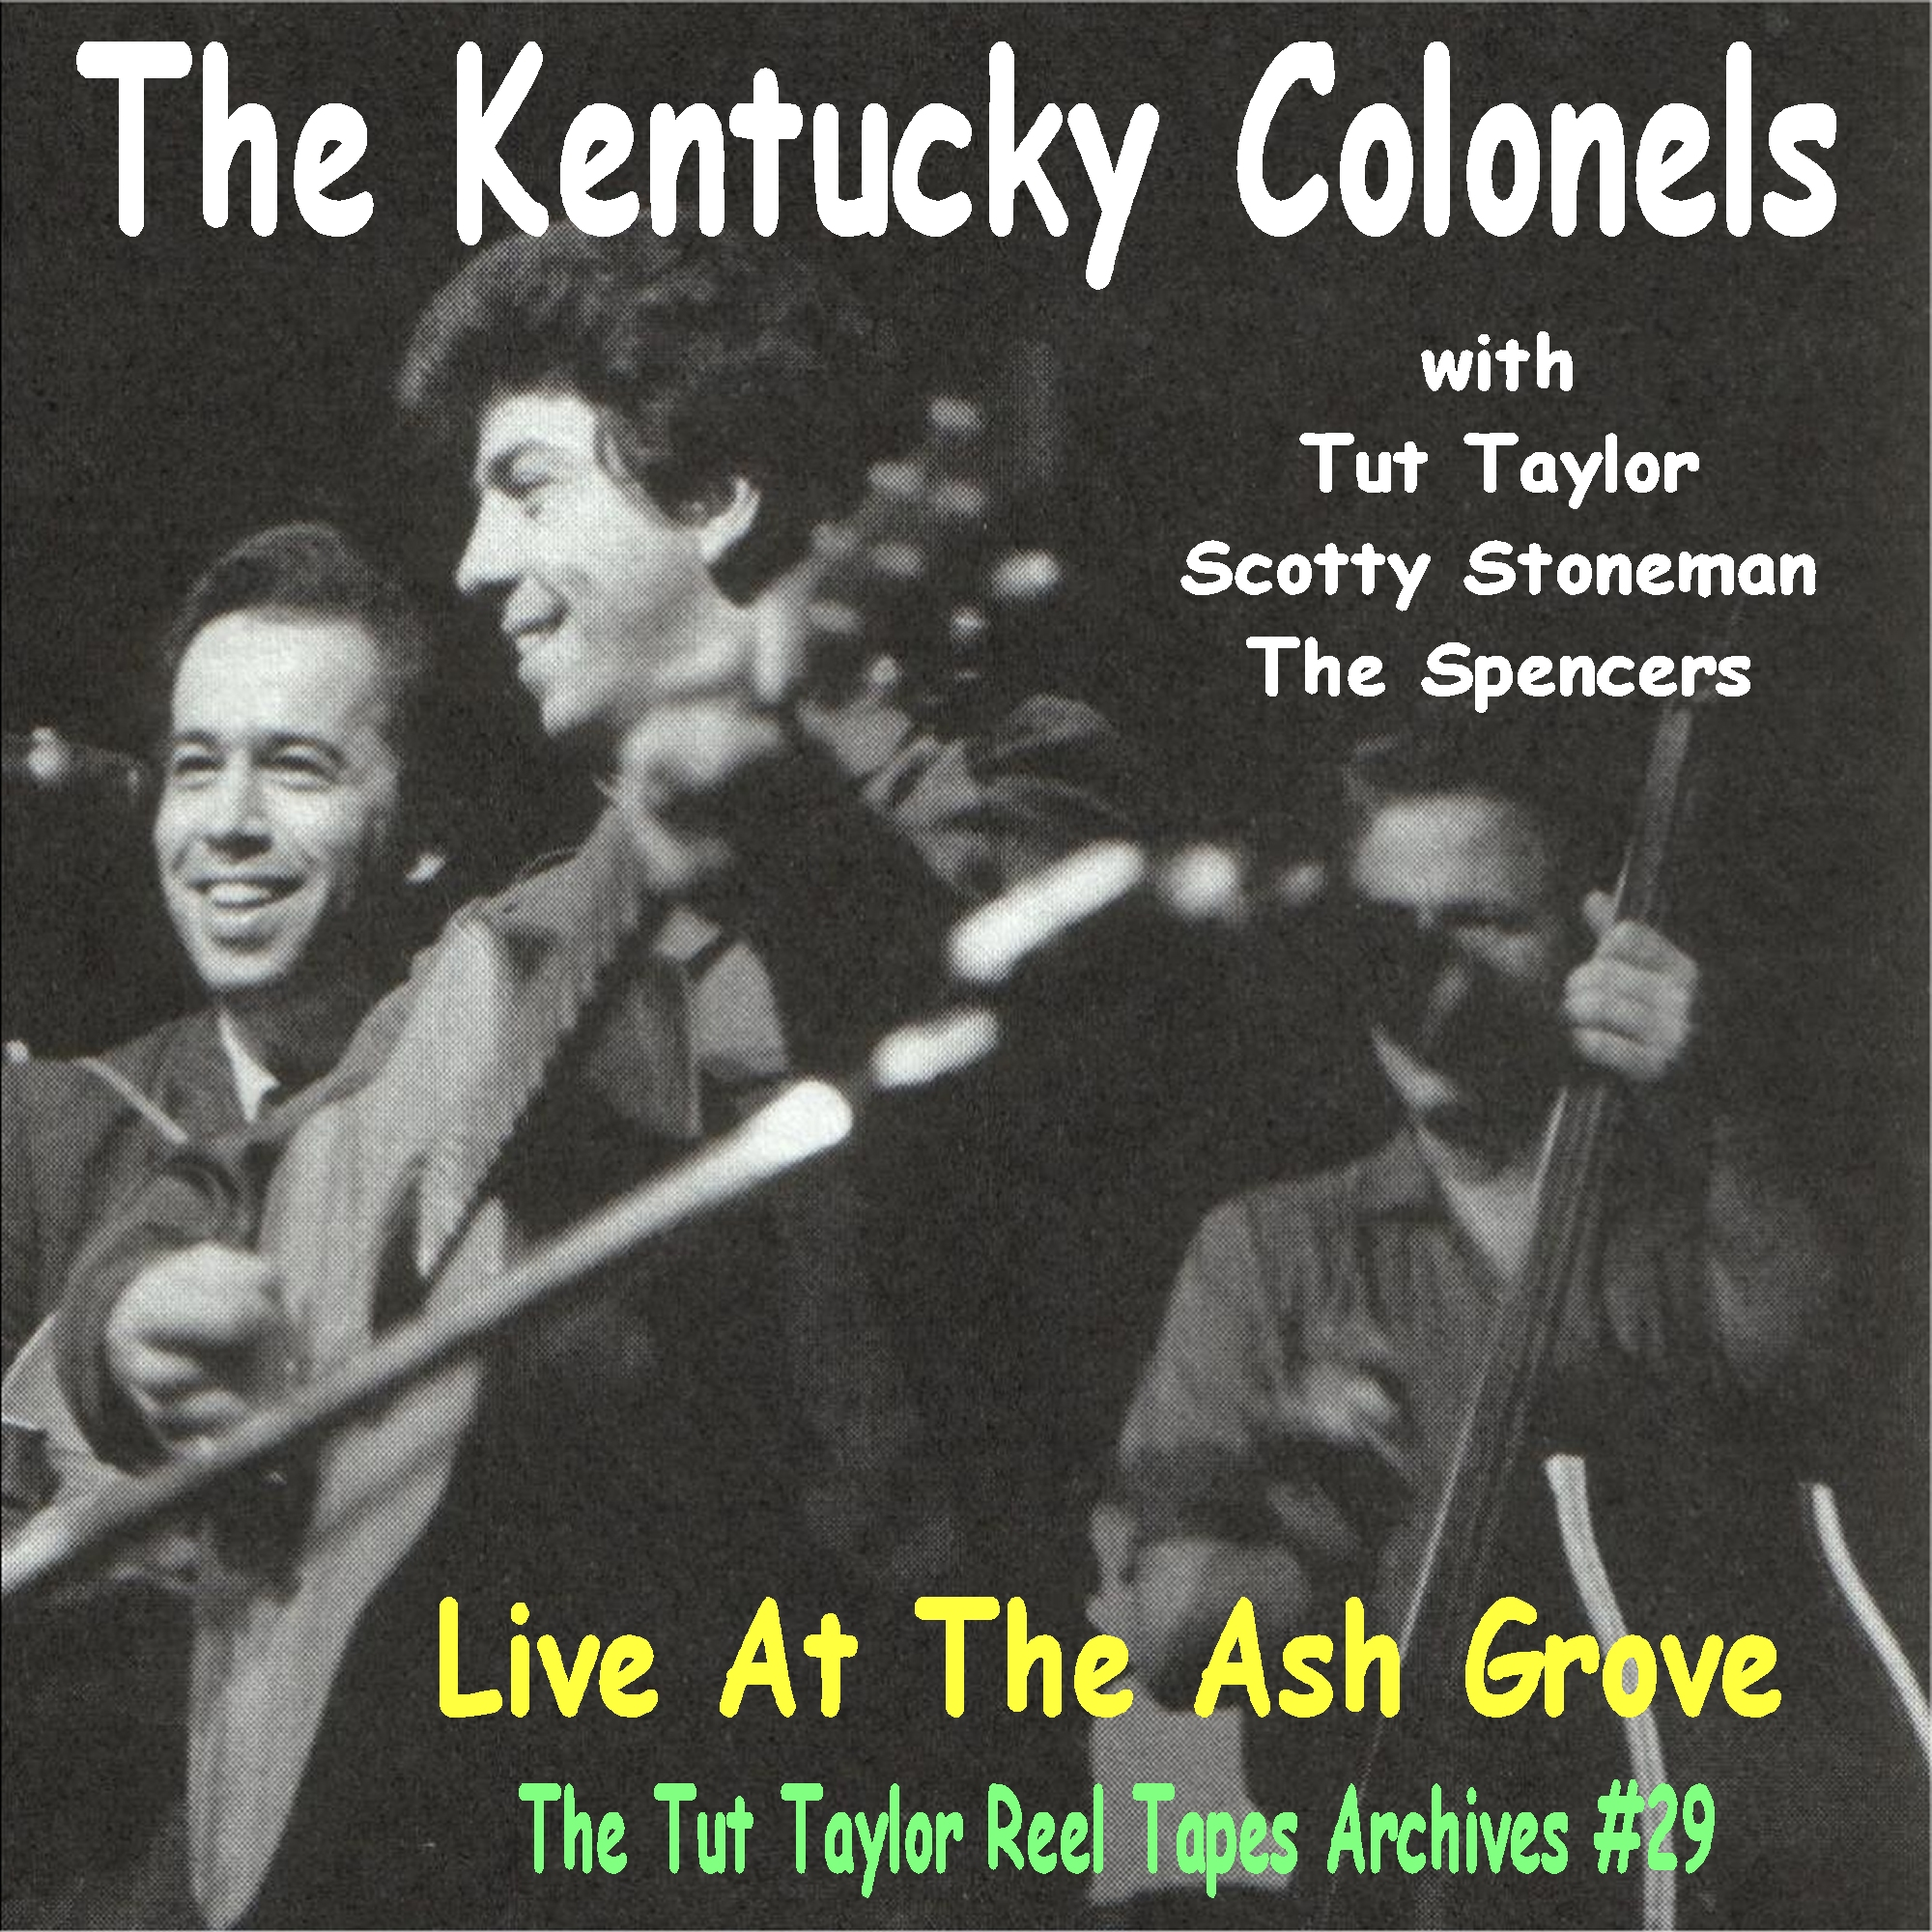 Index of /mp3/Temp/KentuckyColonels/Kentucky Colonels - Ash Grove